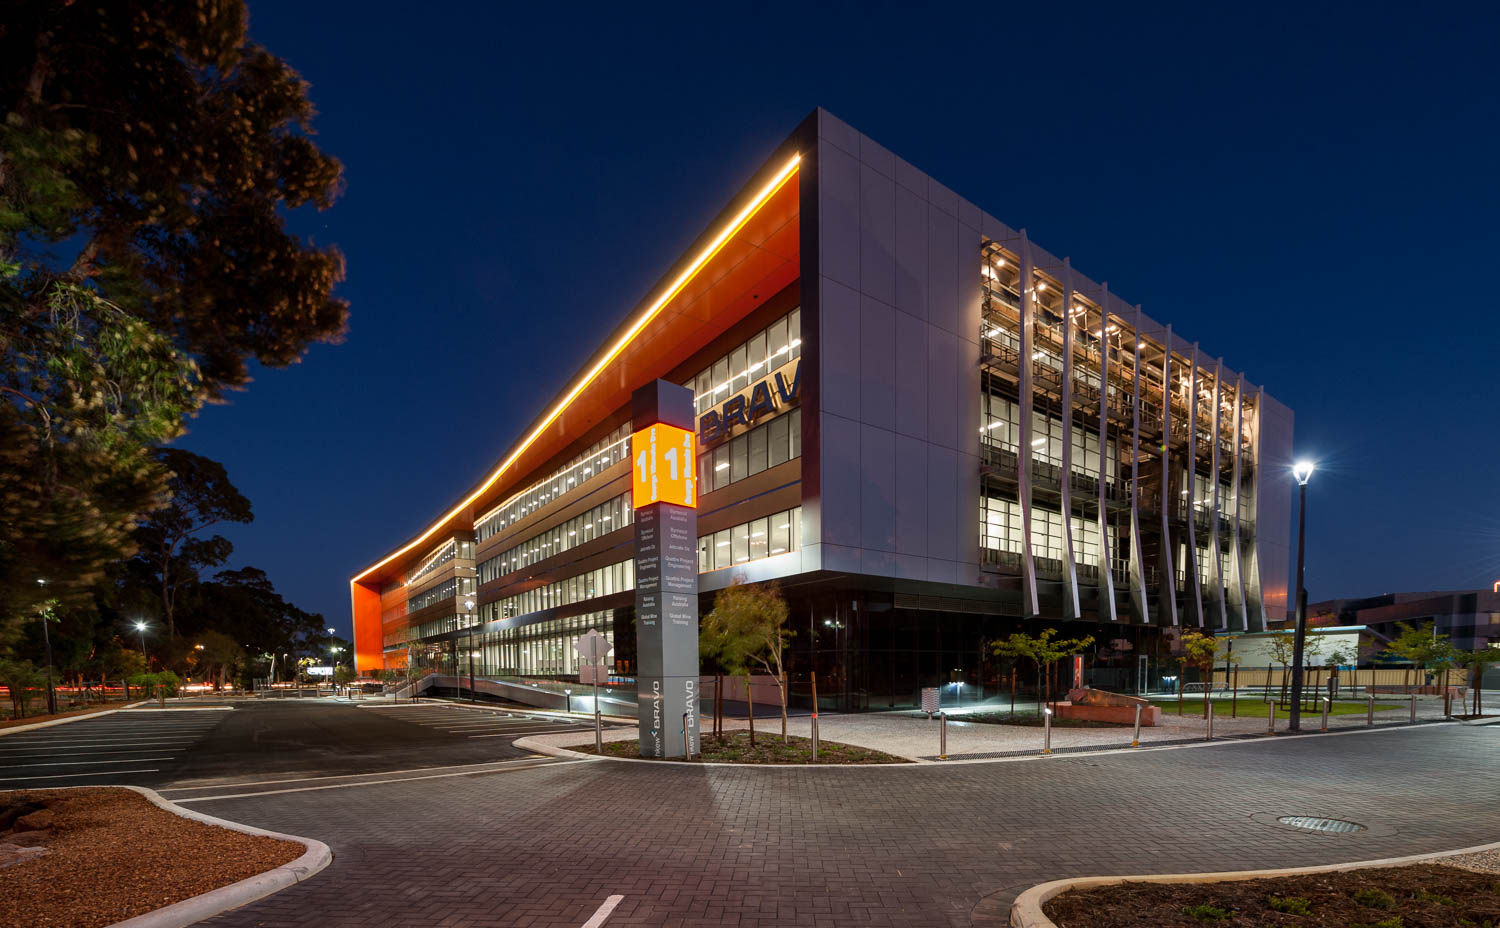 Perth Airport - Bravo Building Copyright Brian Smyth